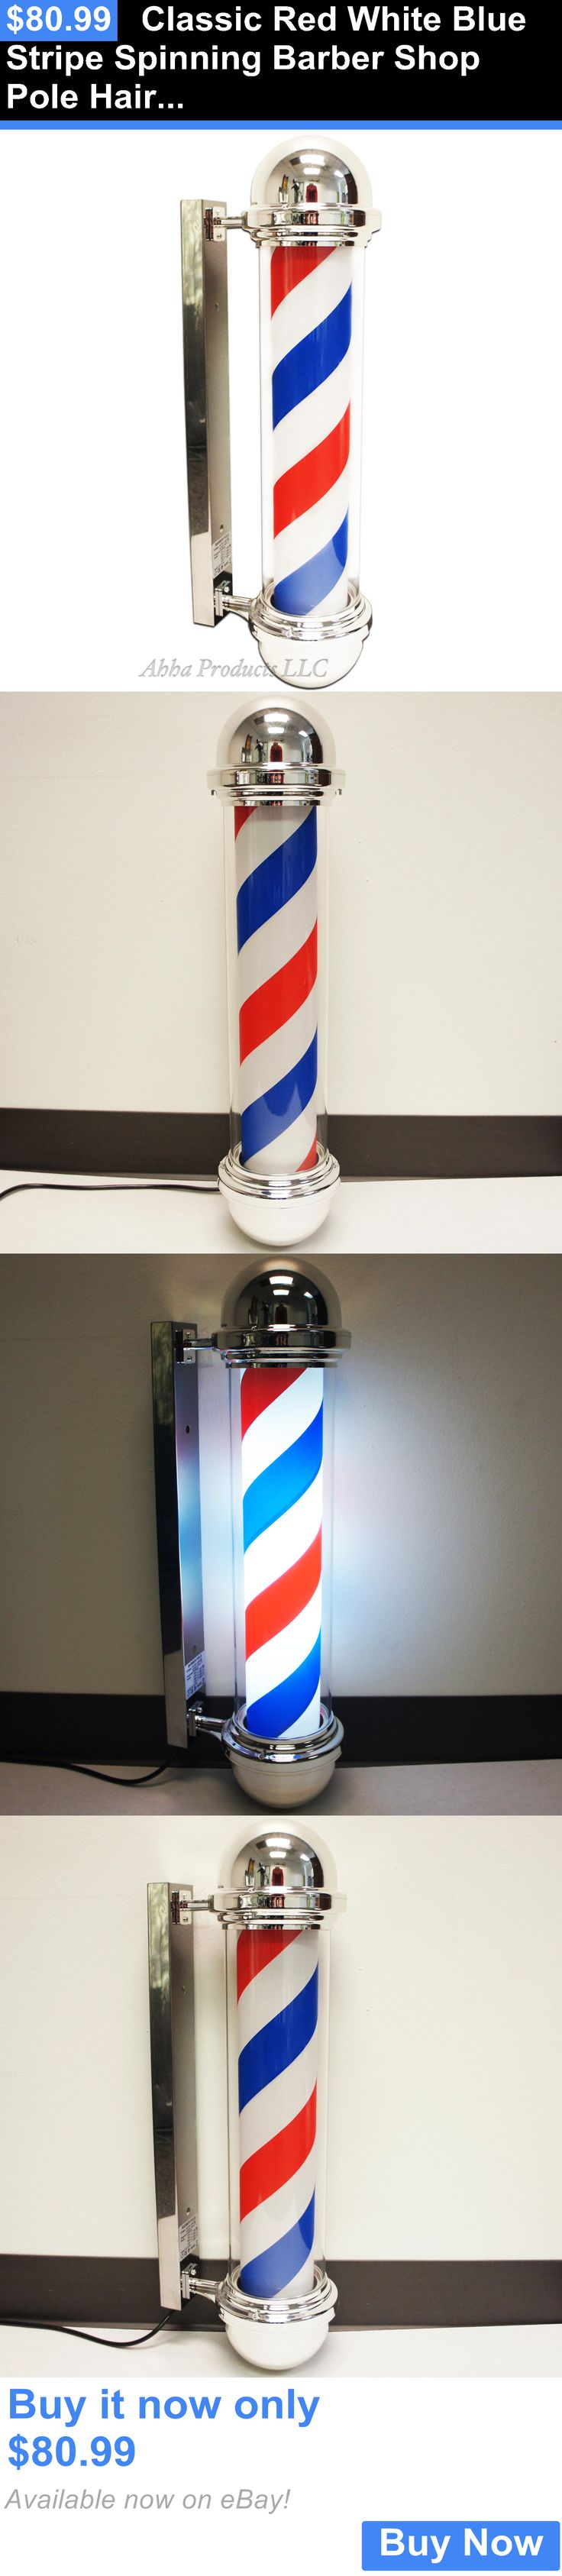 Other Salon and Spa Equipment: Classic Red White Blue Stripe Spinning Barber Shop Pole Hair Cutting Sign Light BUY IT NOW ONLY: $80.99